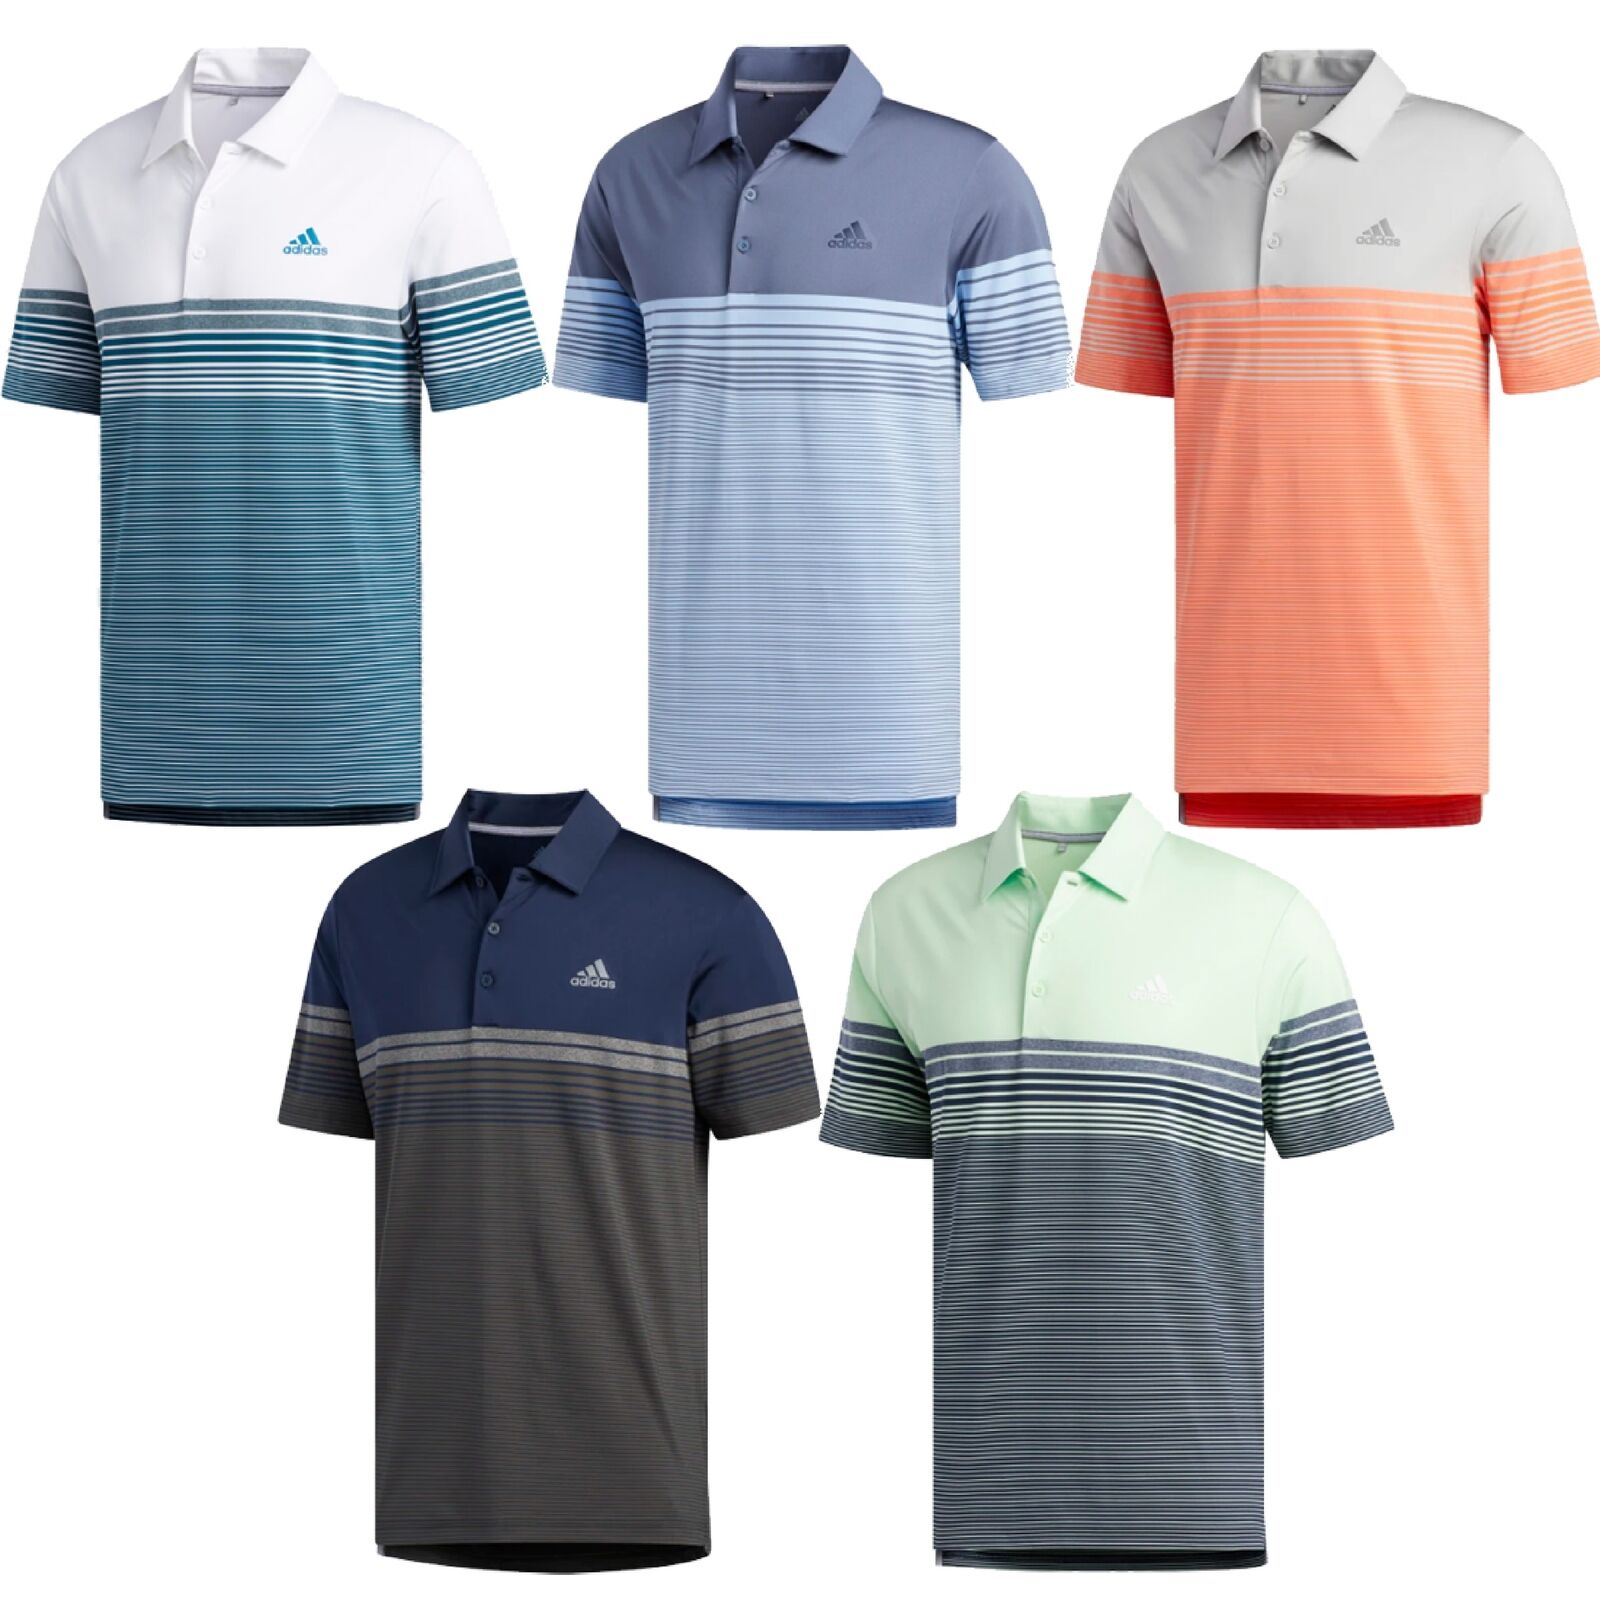 NEW Adidas 2019 Ultimate Gradient Block Stripe Polo - 5 Colours